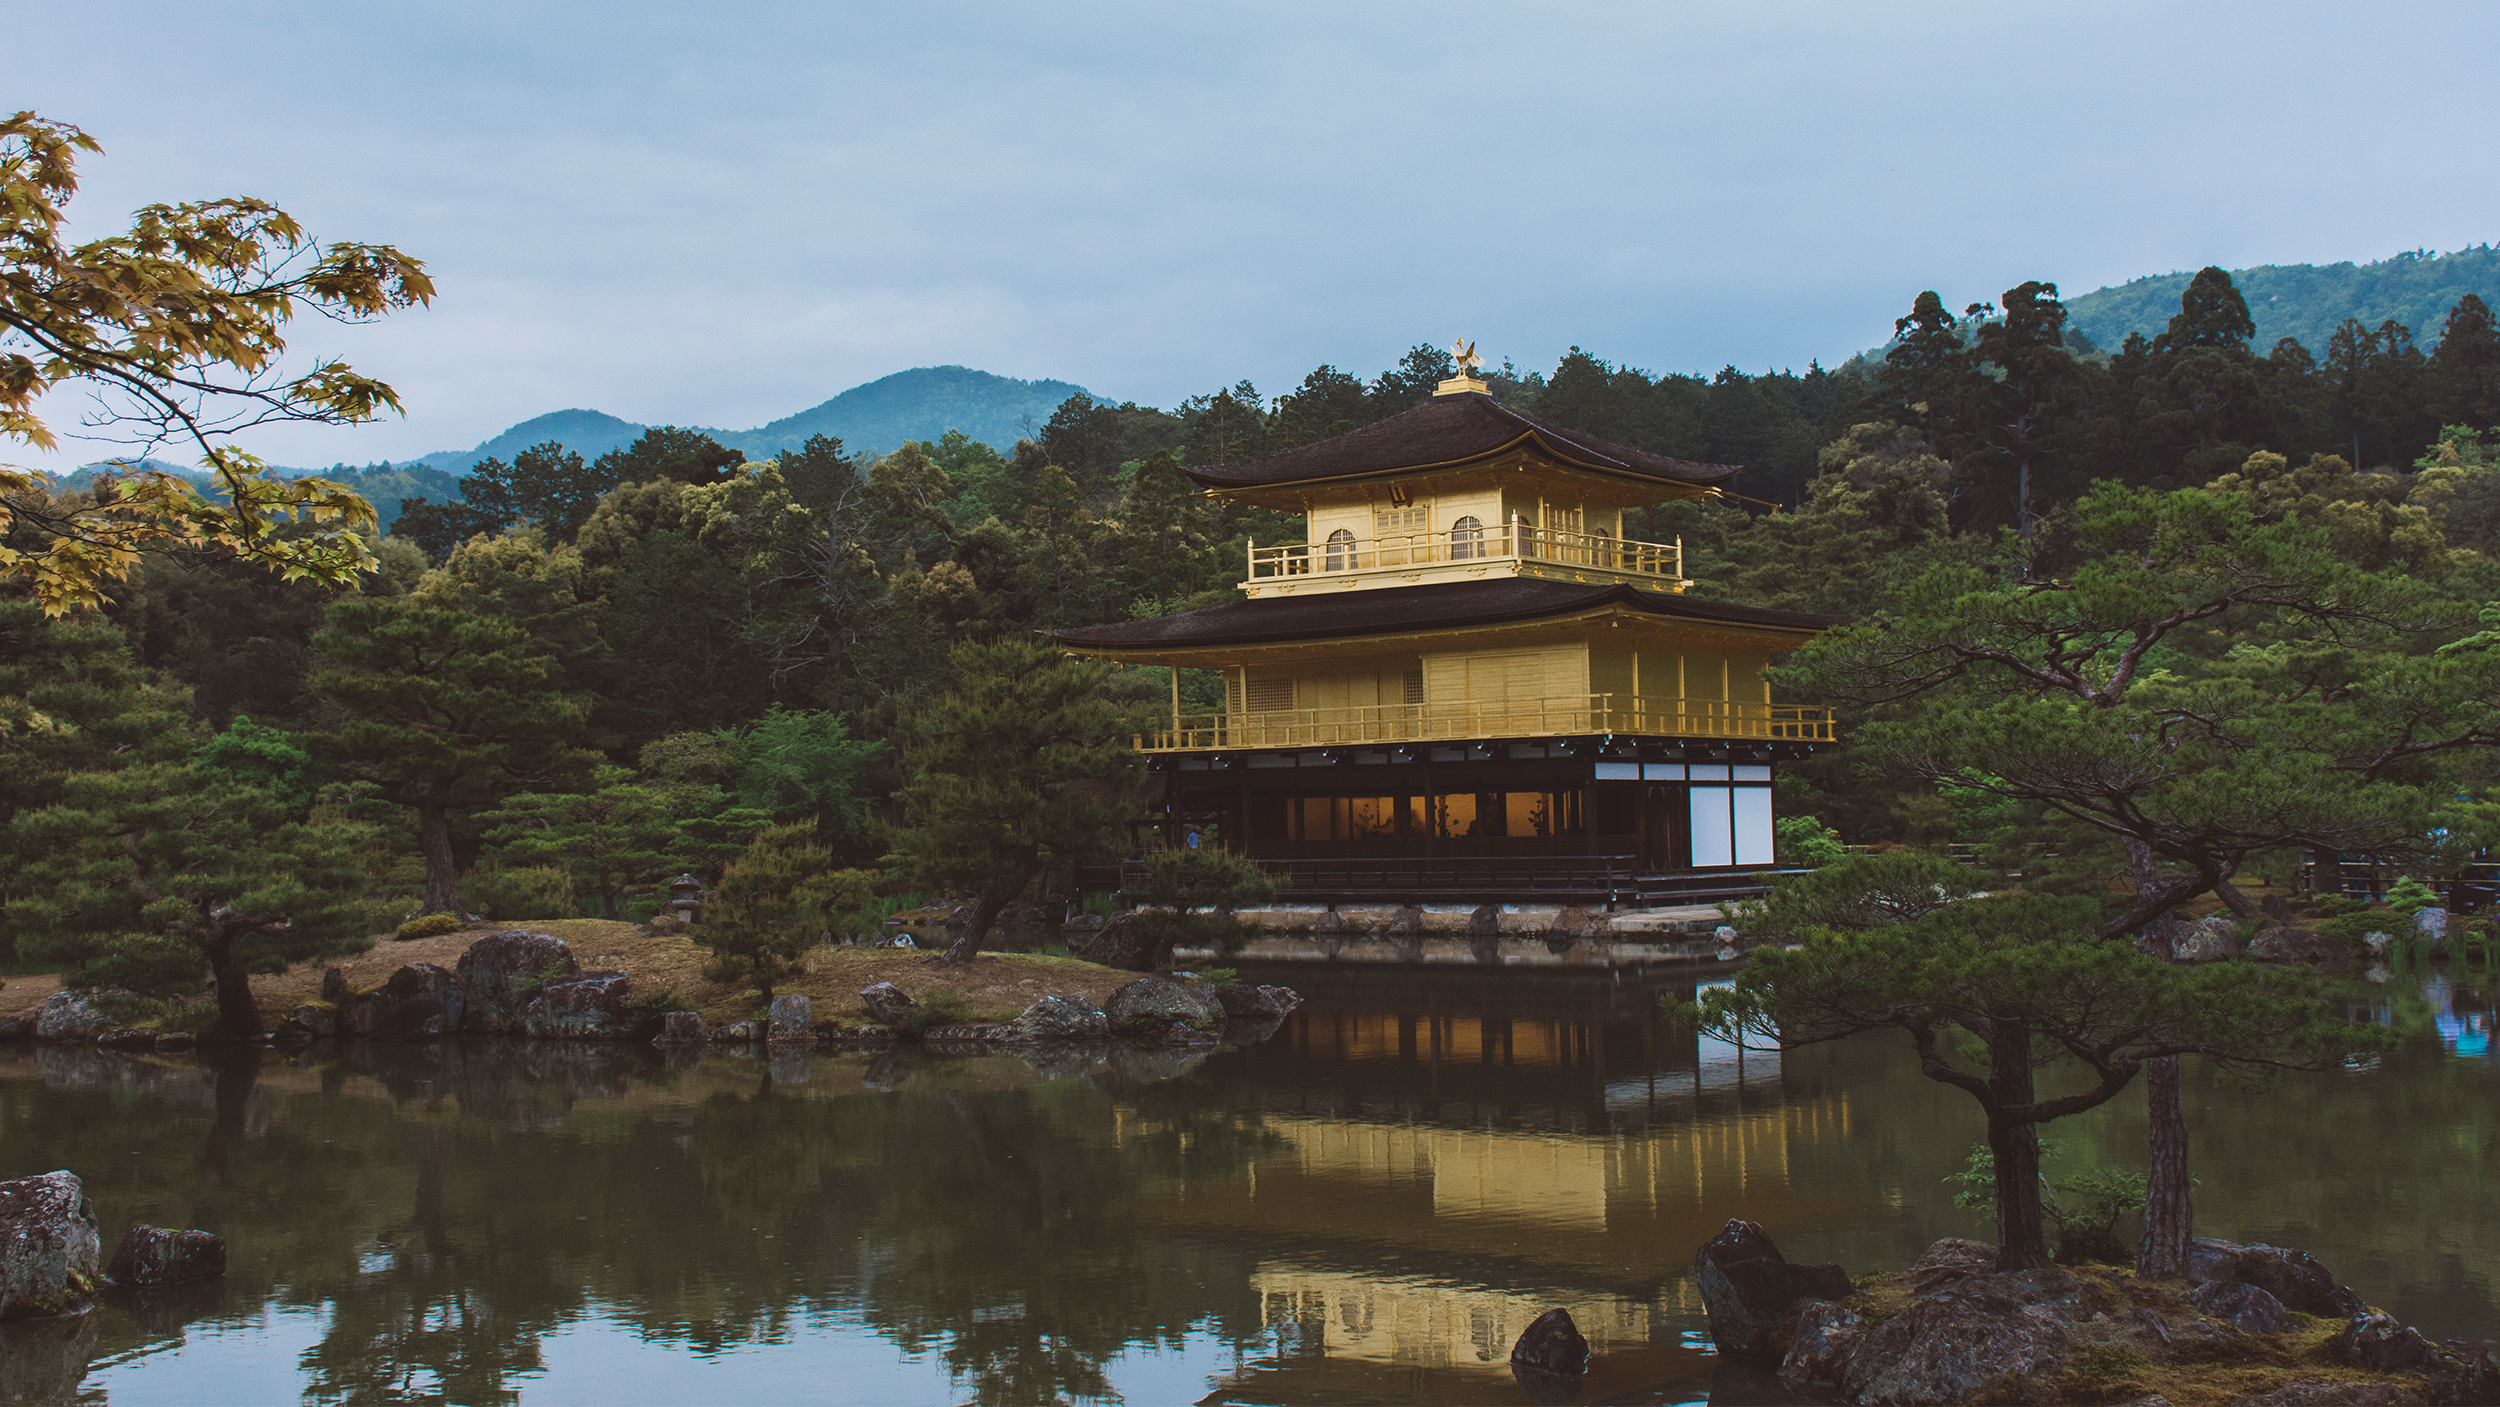 Kinkaku-ji. Kyoto. Go for the gold roof, stay for the lake.